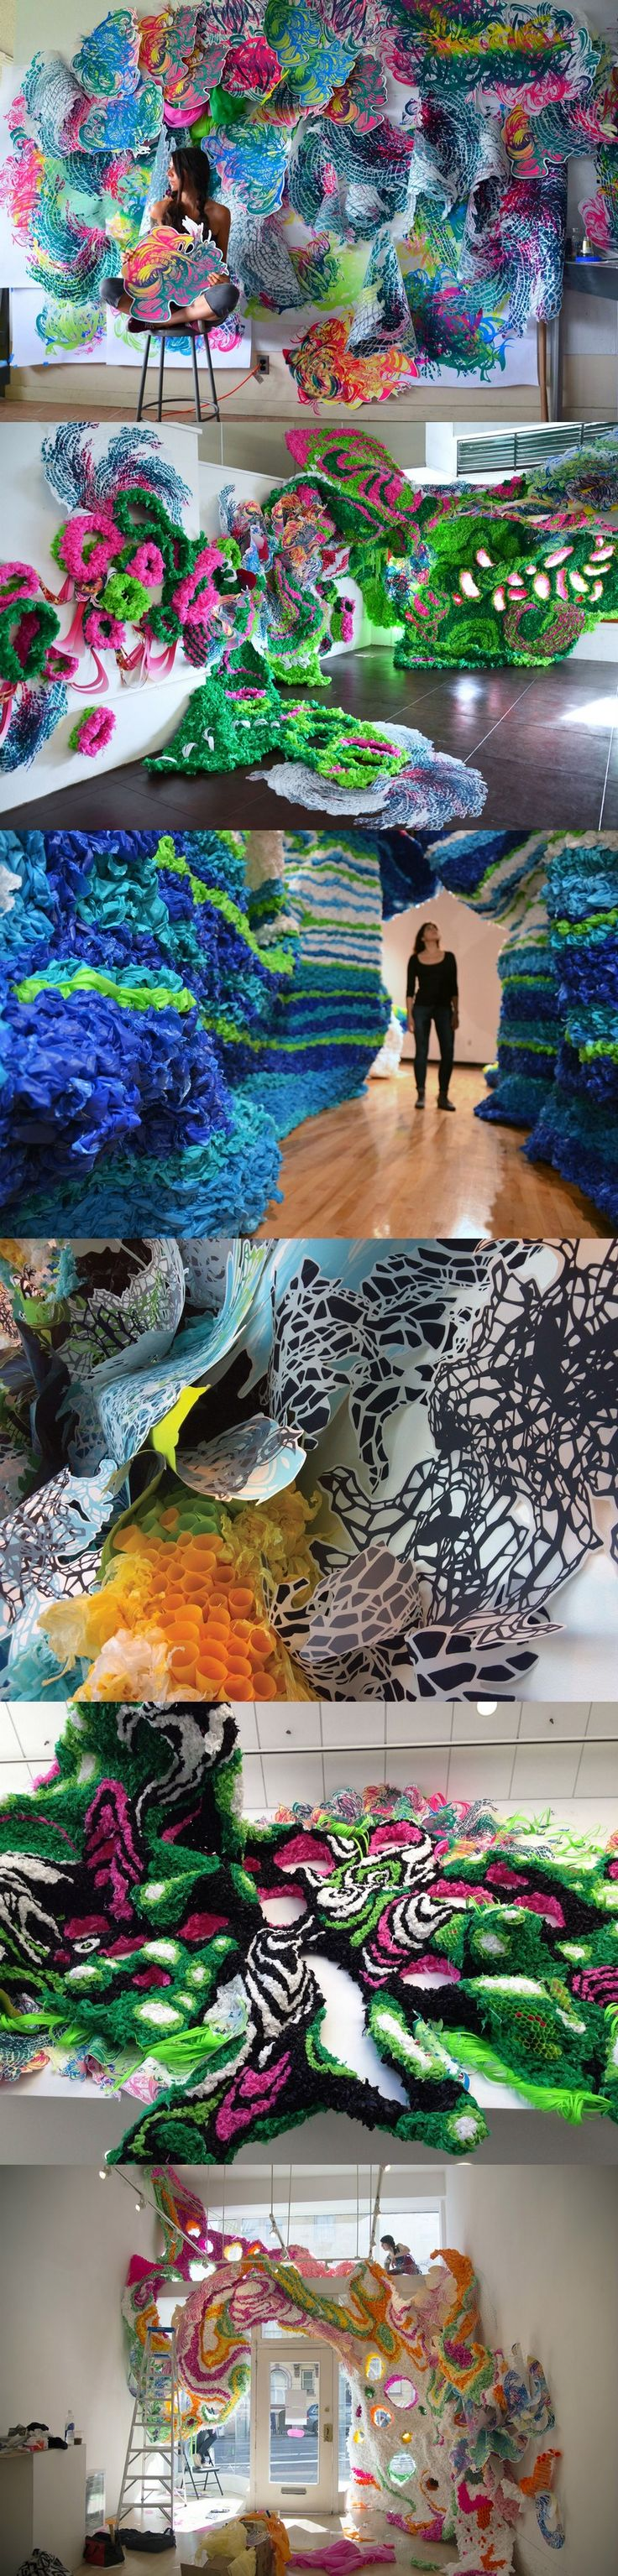 Printmaker/Installation artist Crystal Wagner's Colourful Paper Sculptures